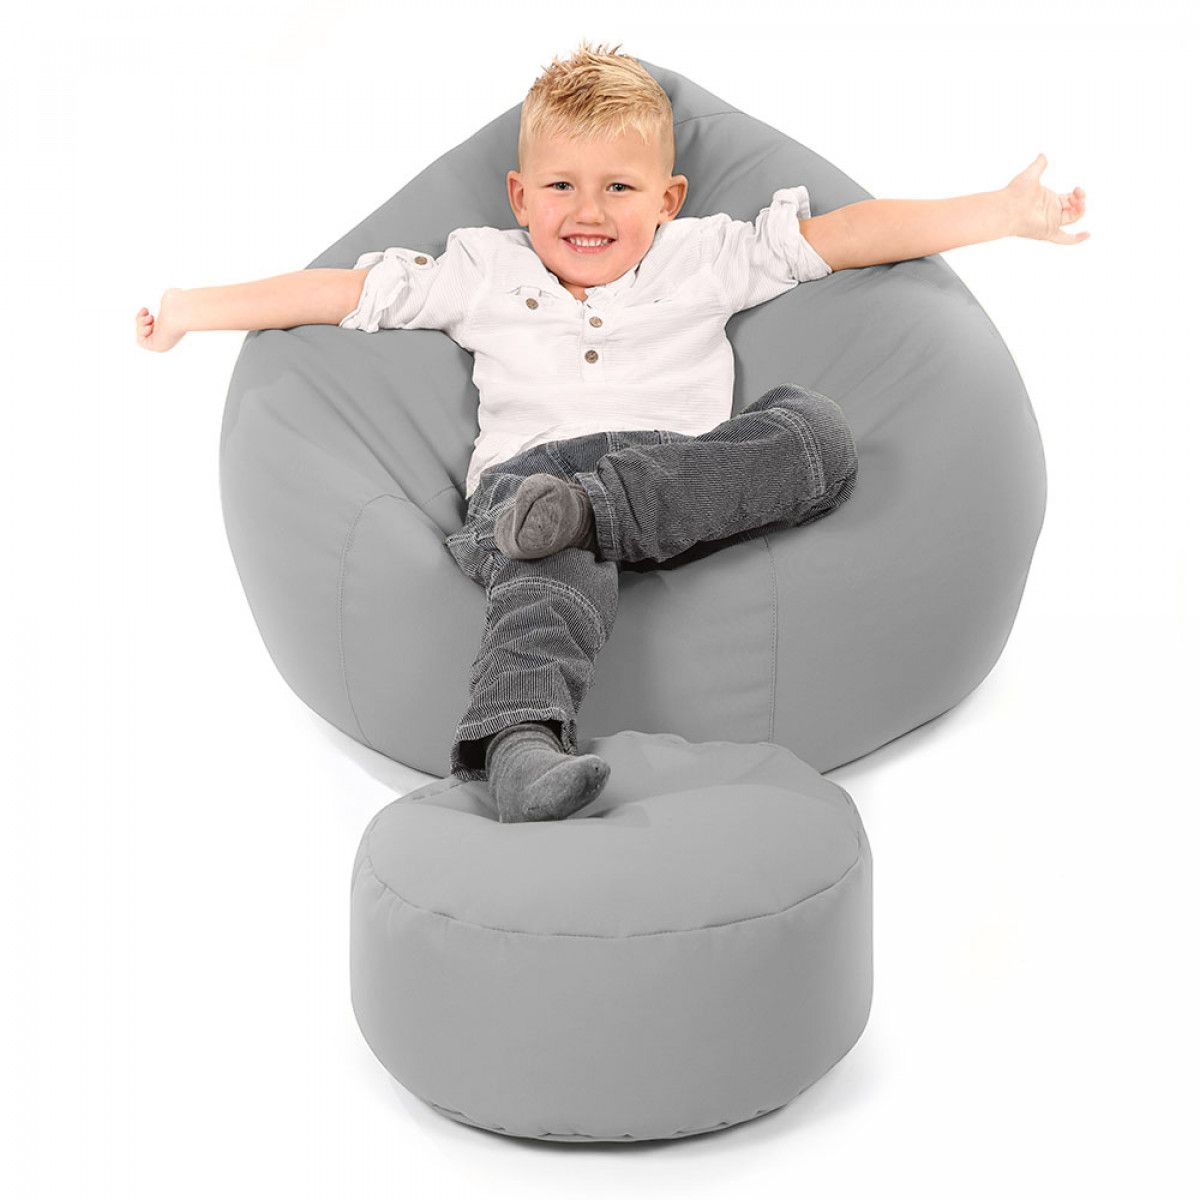 Our Beanbag Furniture Ranges Come In A Fantastic Selection Of Designs UK Made Sofas At Cheap Price By The Bean Bag Chair Manufacturer With Top